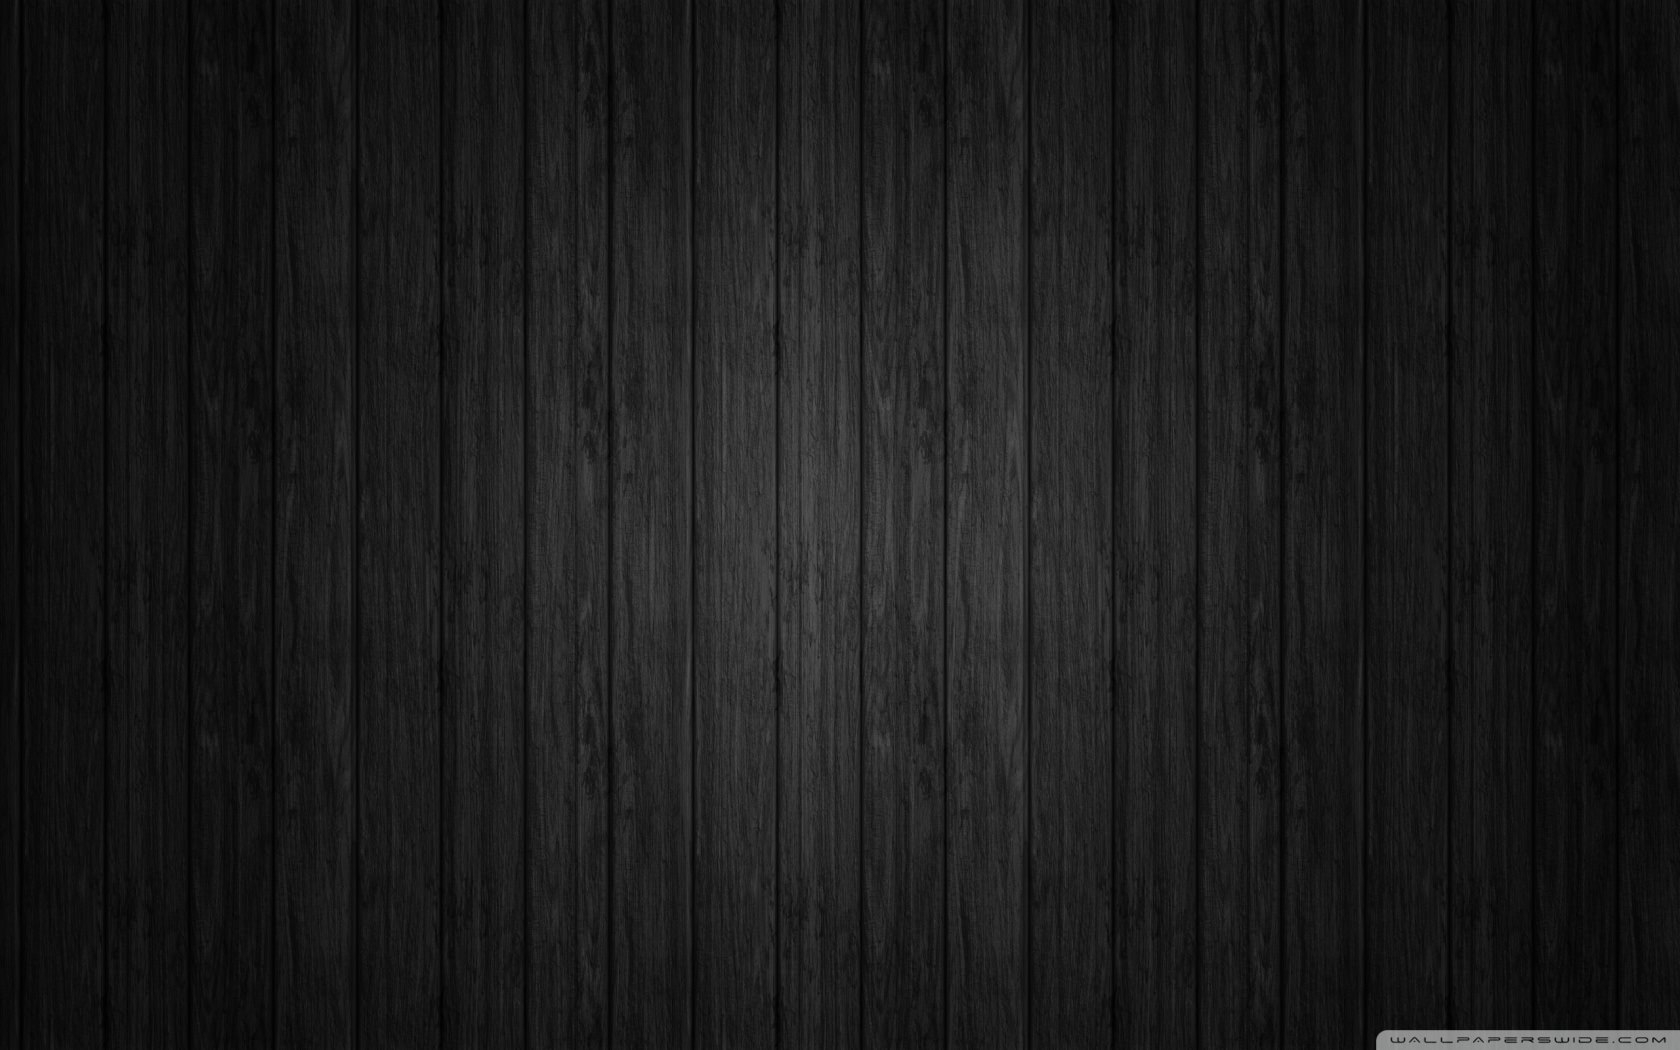 Black Background Wood Wallpaper. 30  Black Wood Backgrounds   FreeCreatives